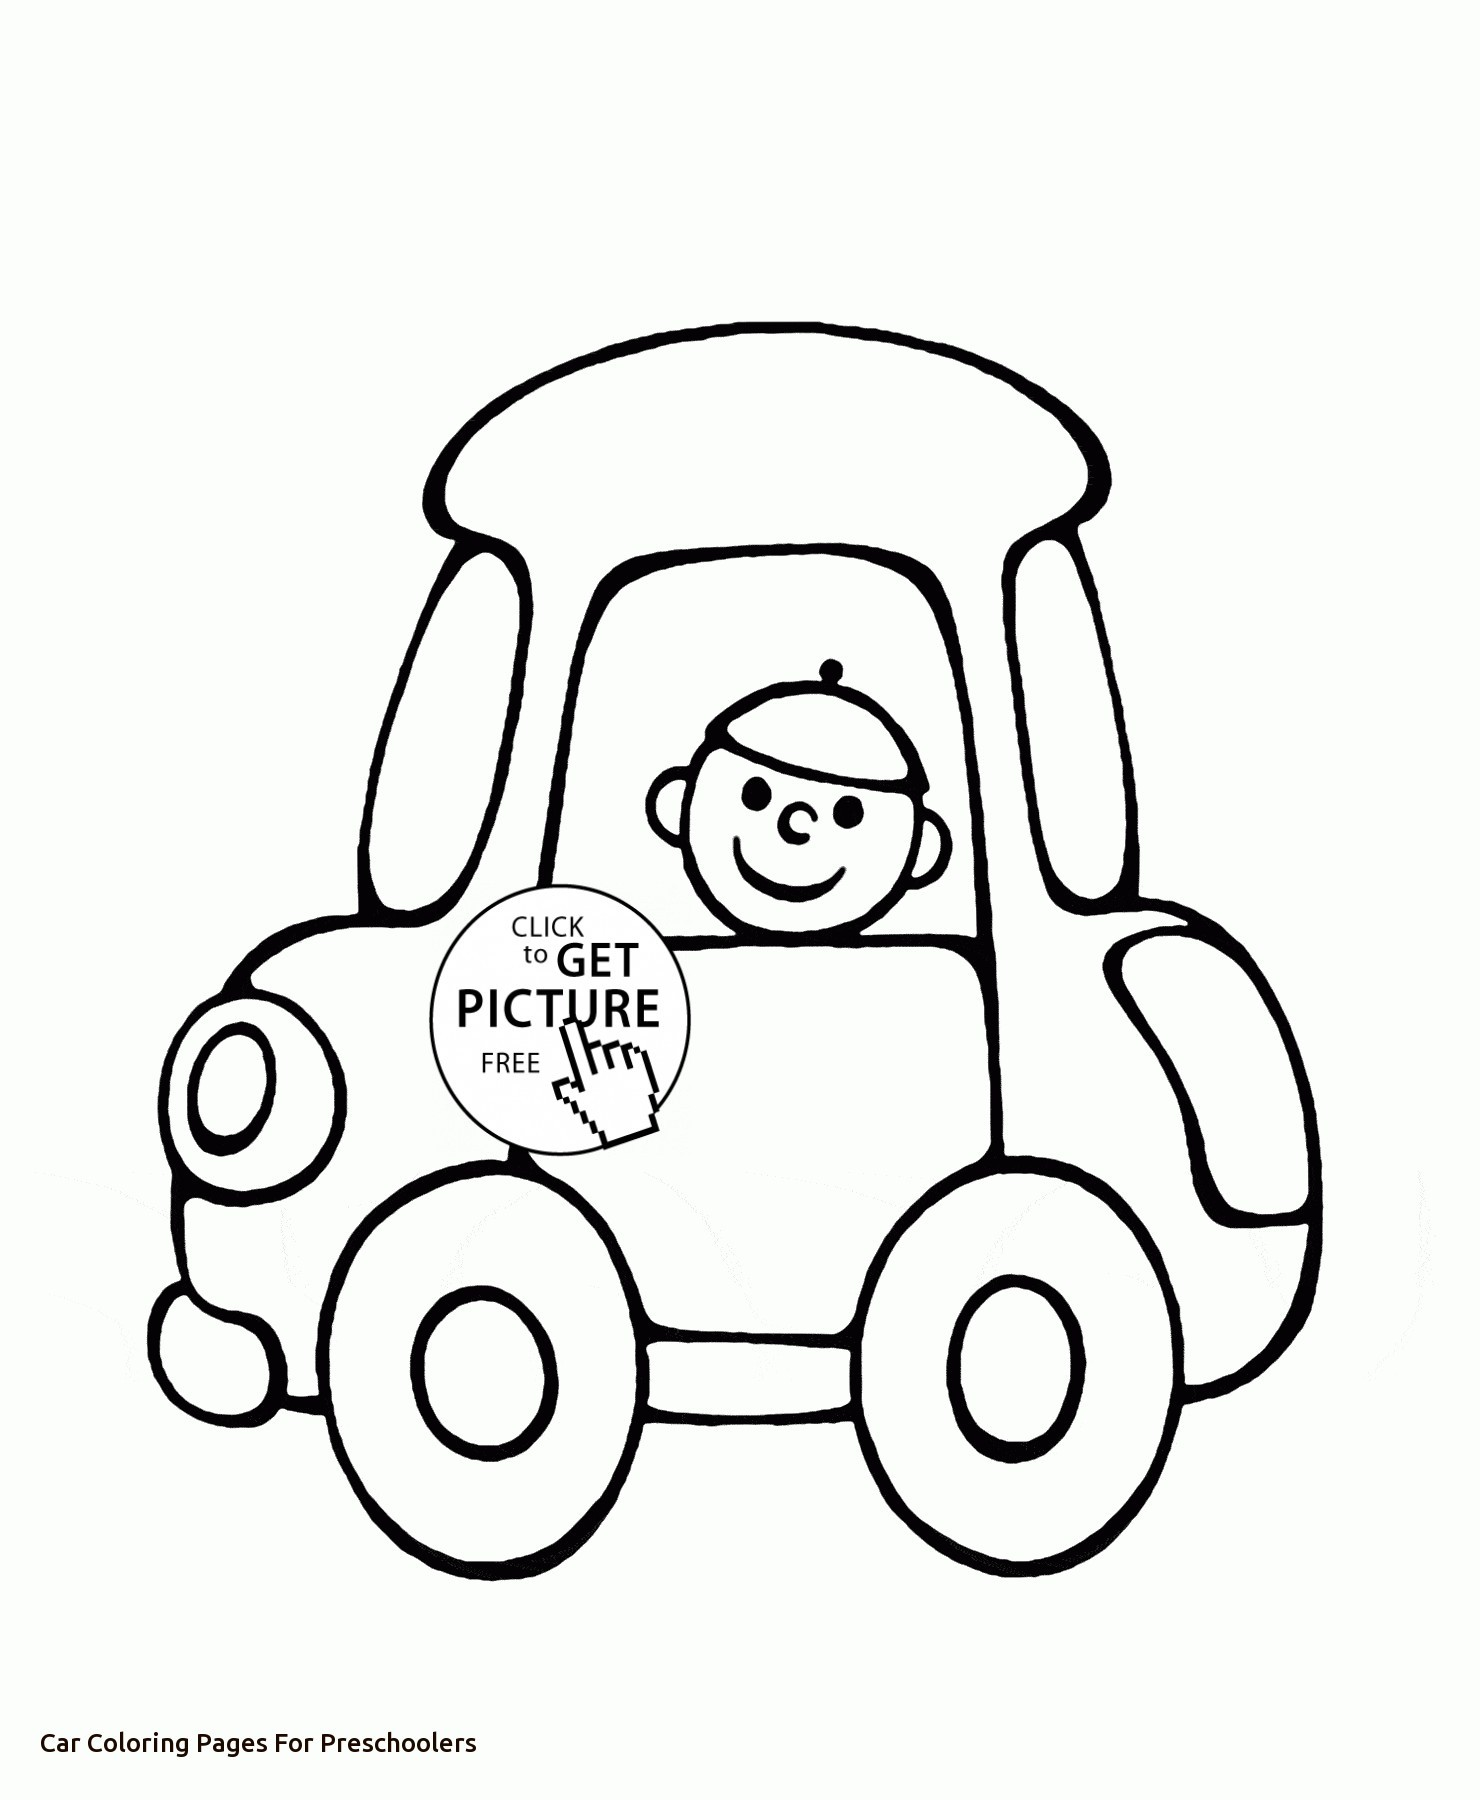 Transportation Coloring Pages For Preschoolers At Getcolorings